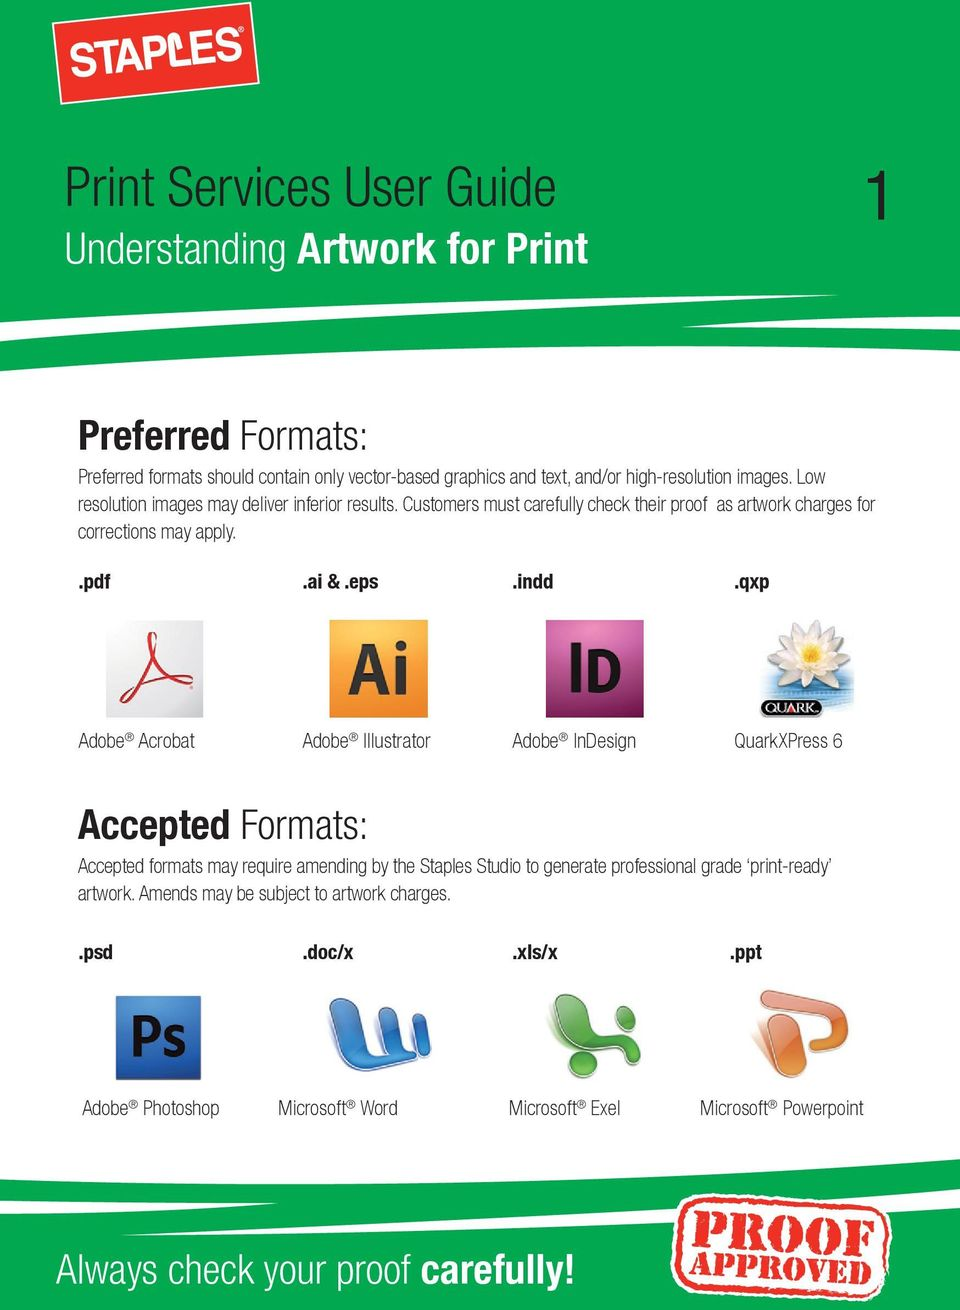 qxp Adobe Acrobat Adobe Illustrator Adobe InDesign QuarkXPress 6 Accepted Formats: Accepted formats may require amending by the Staples Studio to generate professional grade